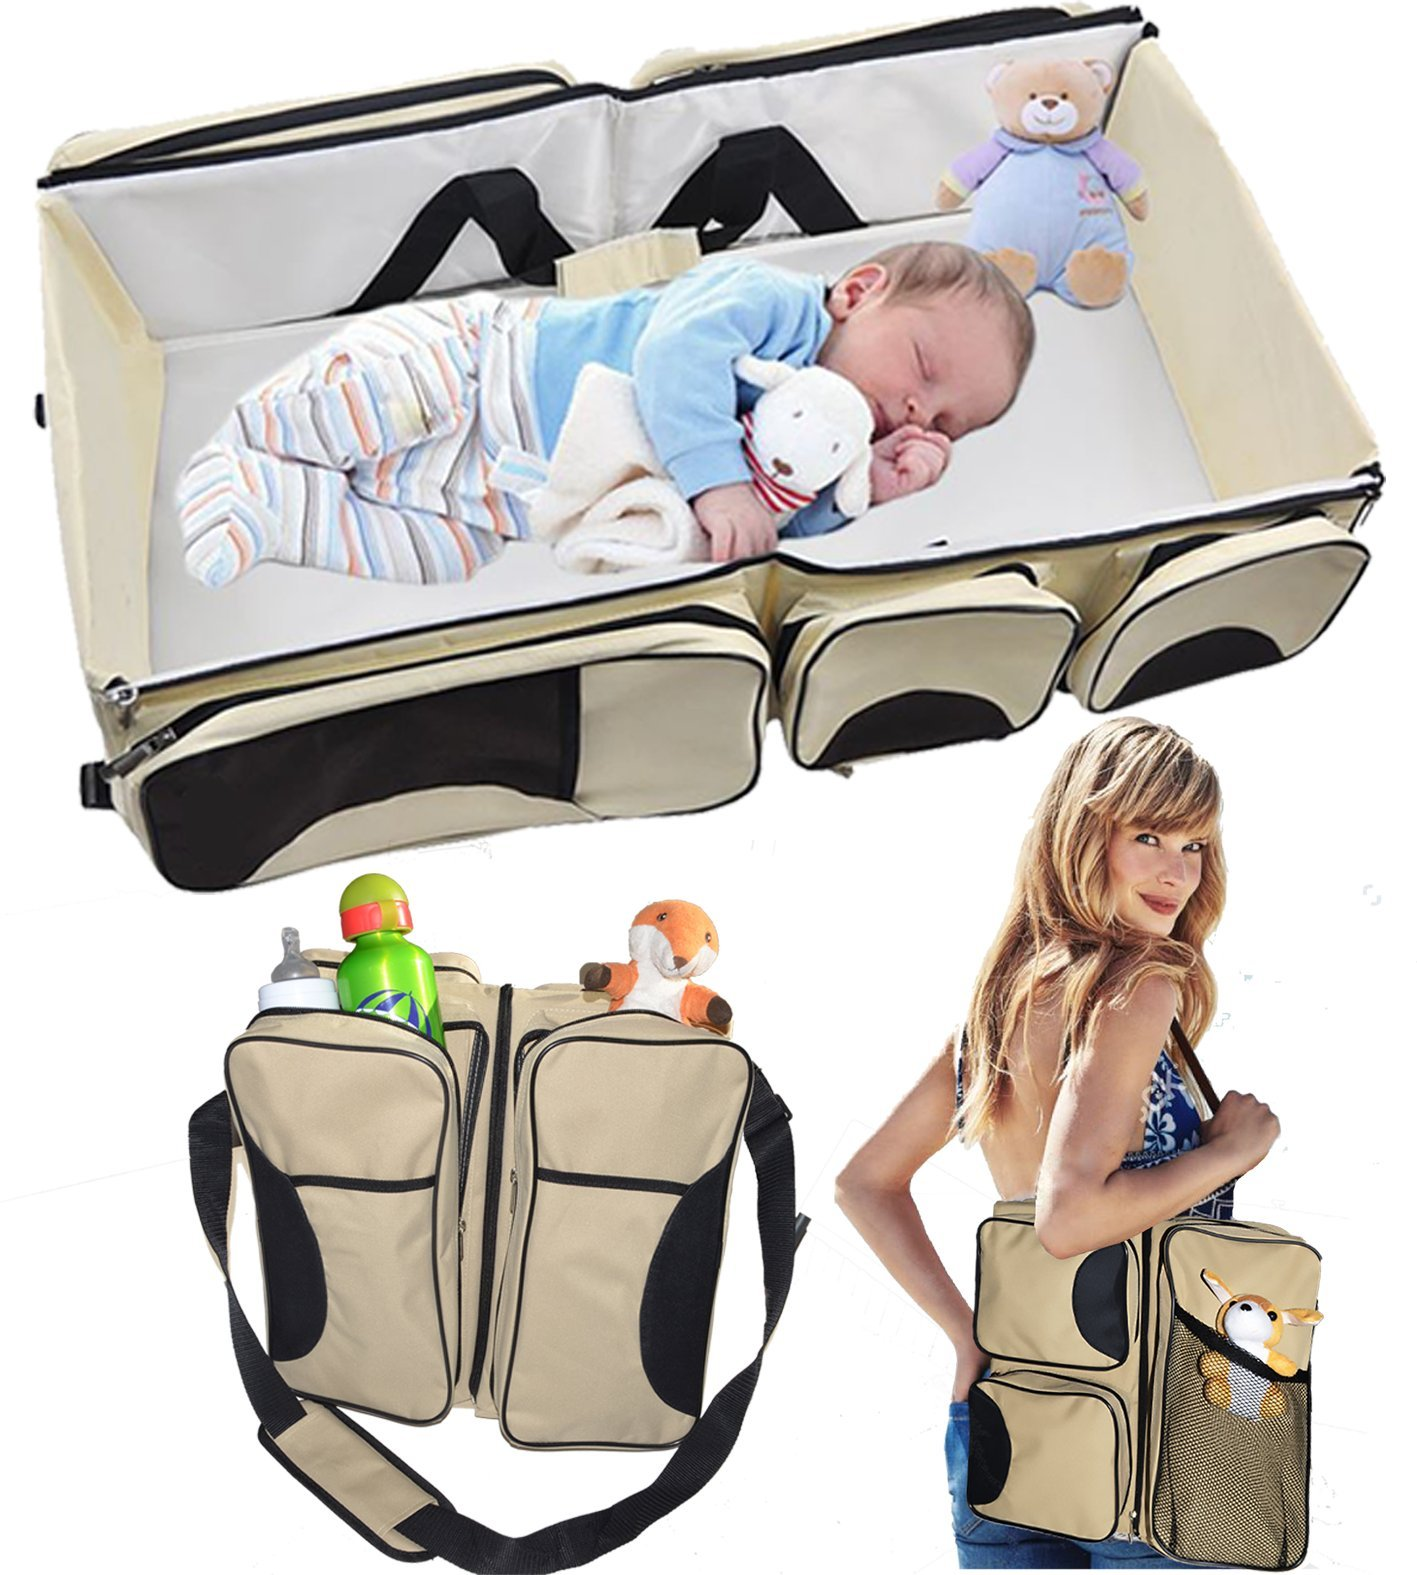 TinyToes 3 in 1 - Travel Bassinet - Diaper bag - Change Station - (Cream) - Baby Diaper Bag Bed Nappy Infant Carrycot Portable Change Table Portacrib Boy Girl Best Quality Newborn by Babygear4u